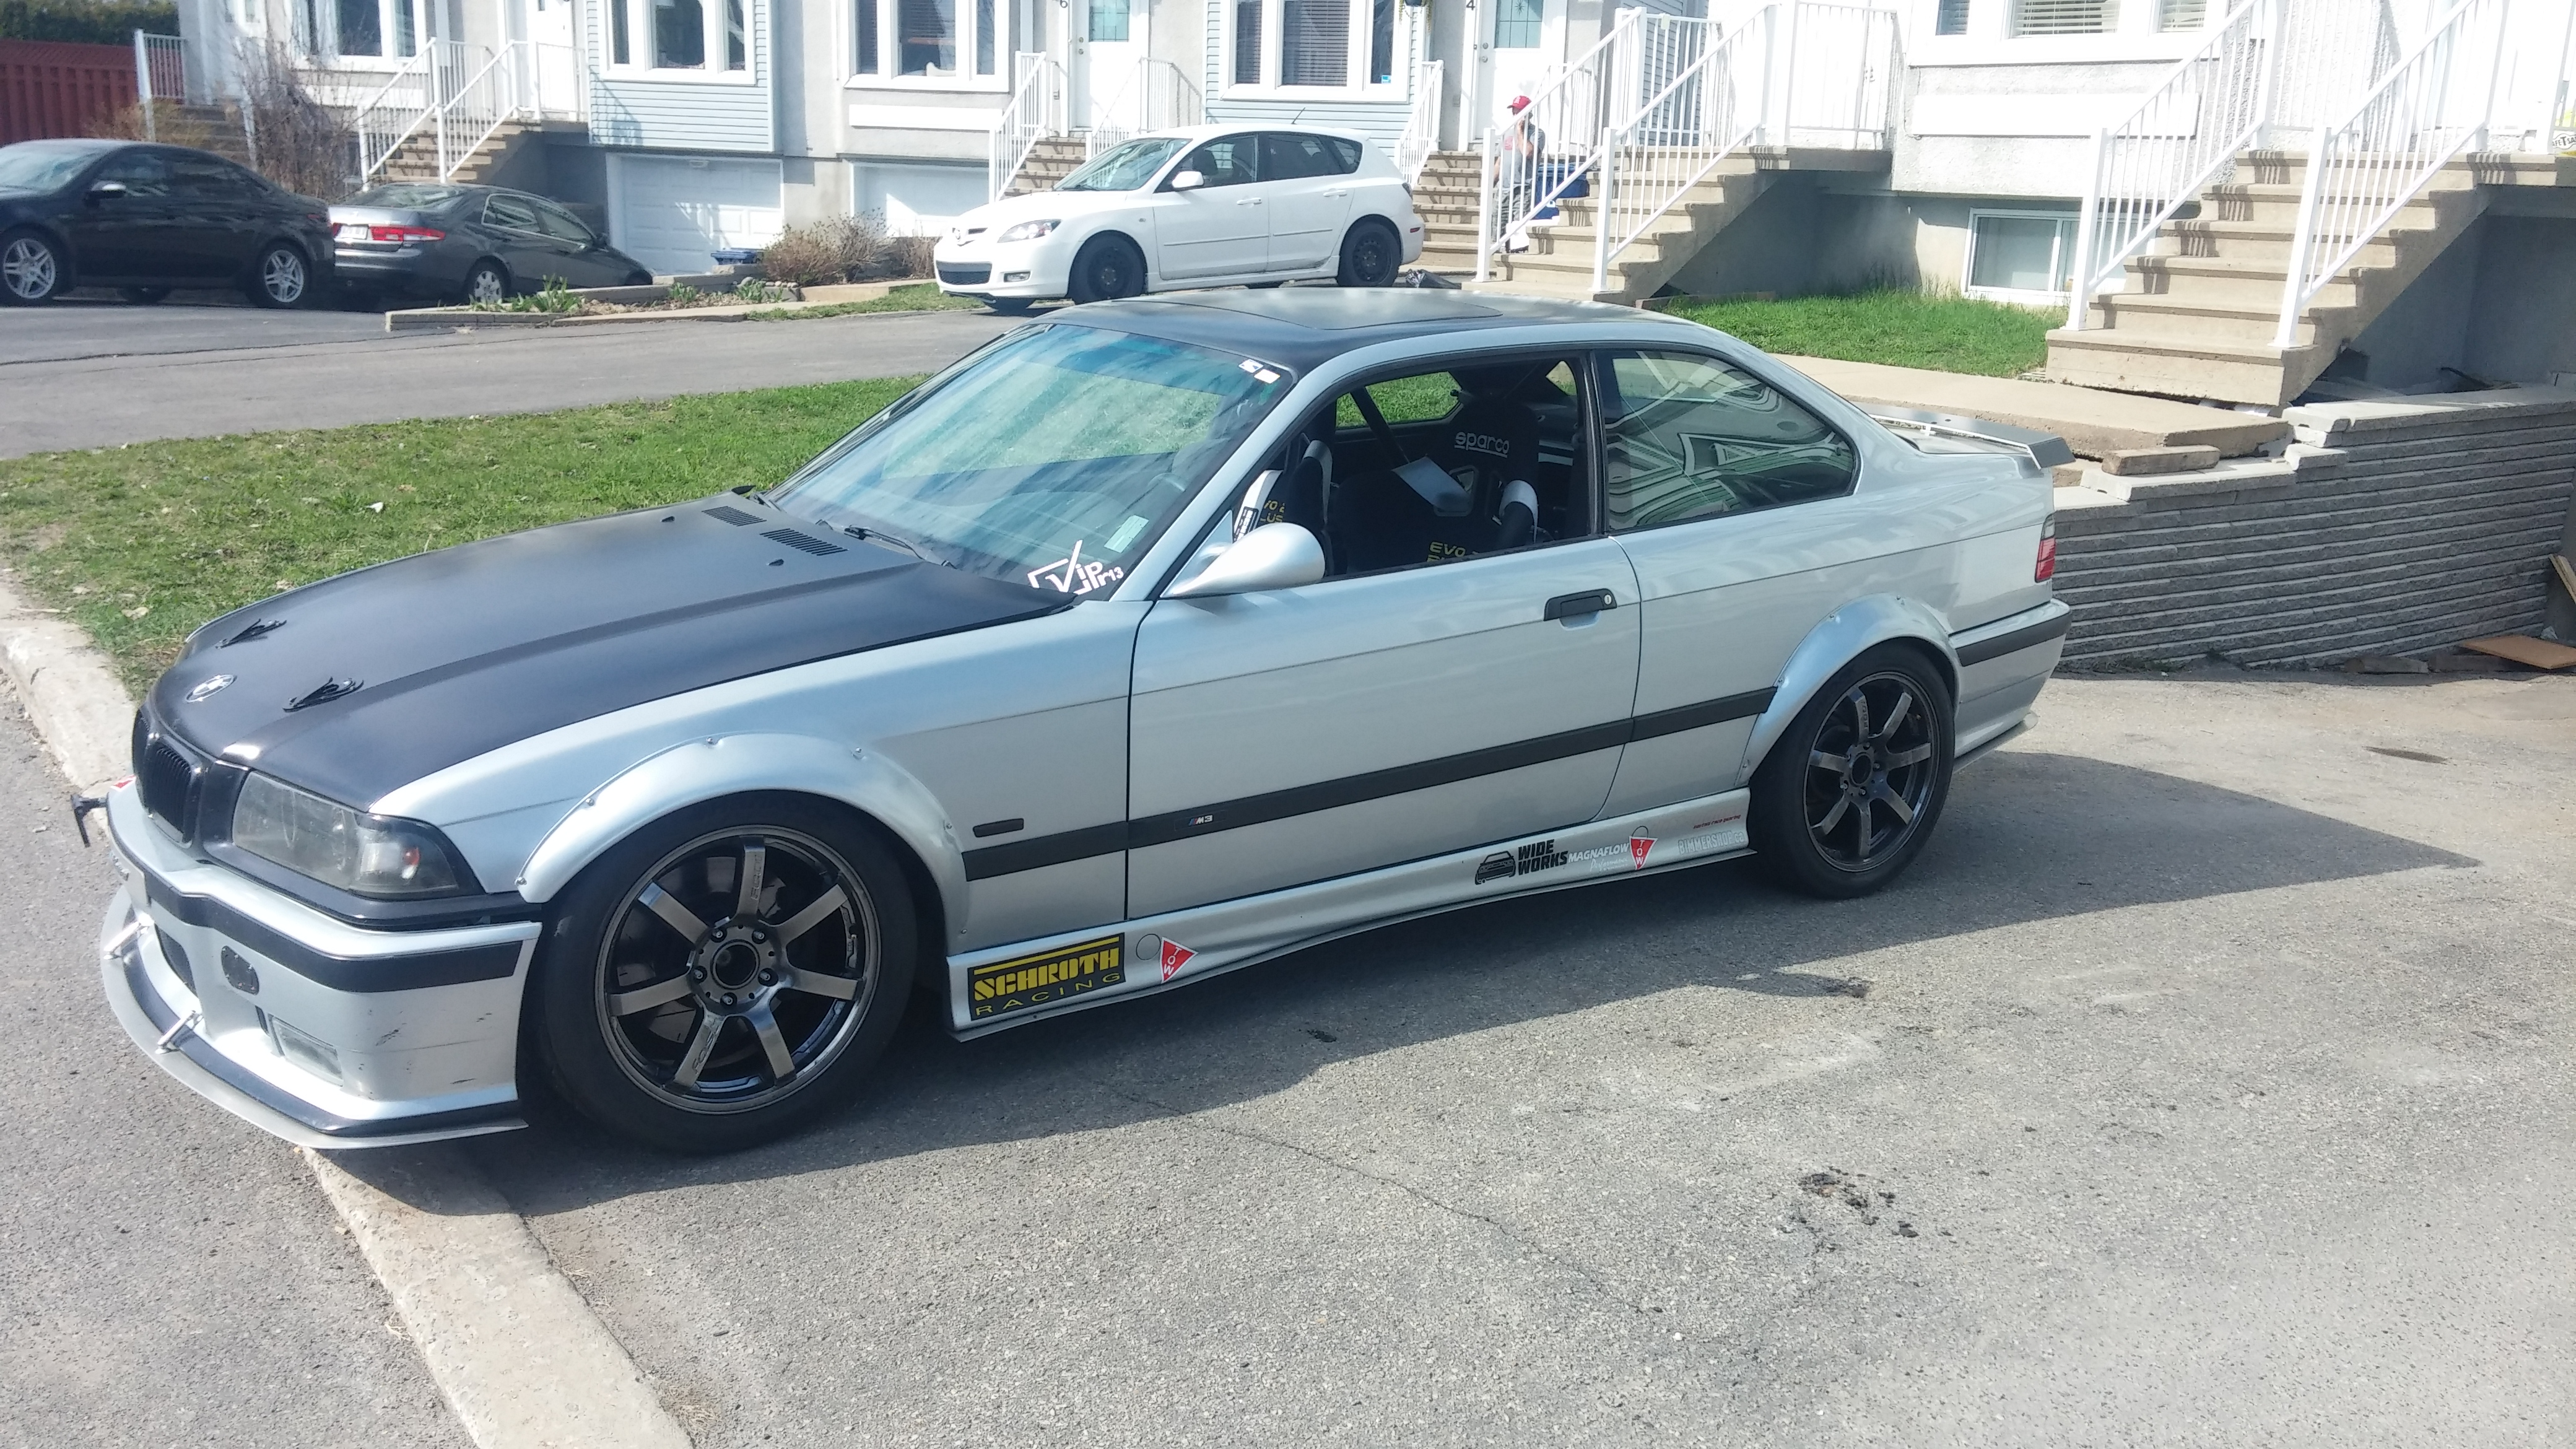 Interieur M Performance Bmw M3 E36 1998 Track Car For Sale In Laval - $16000